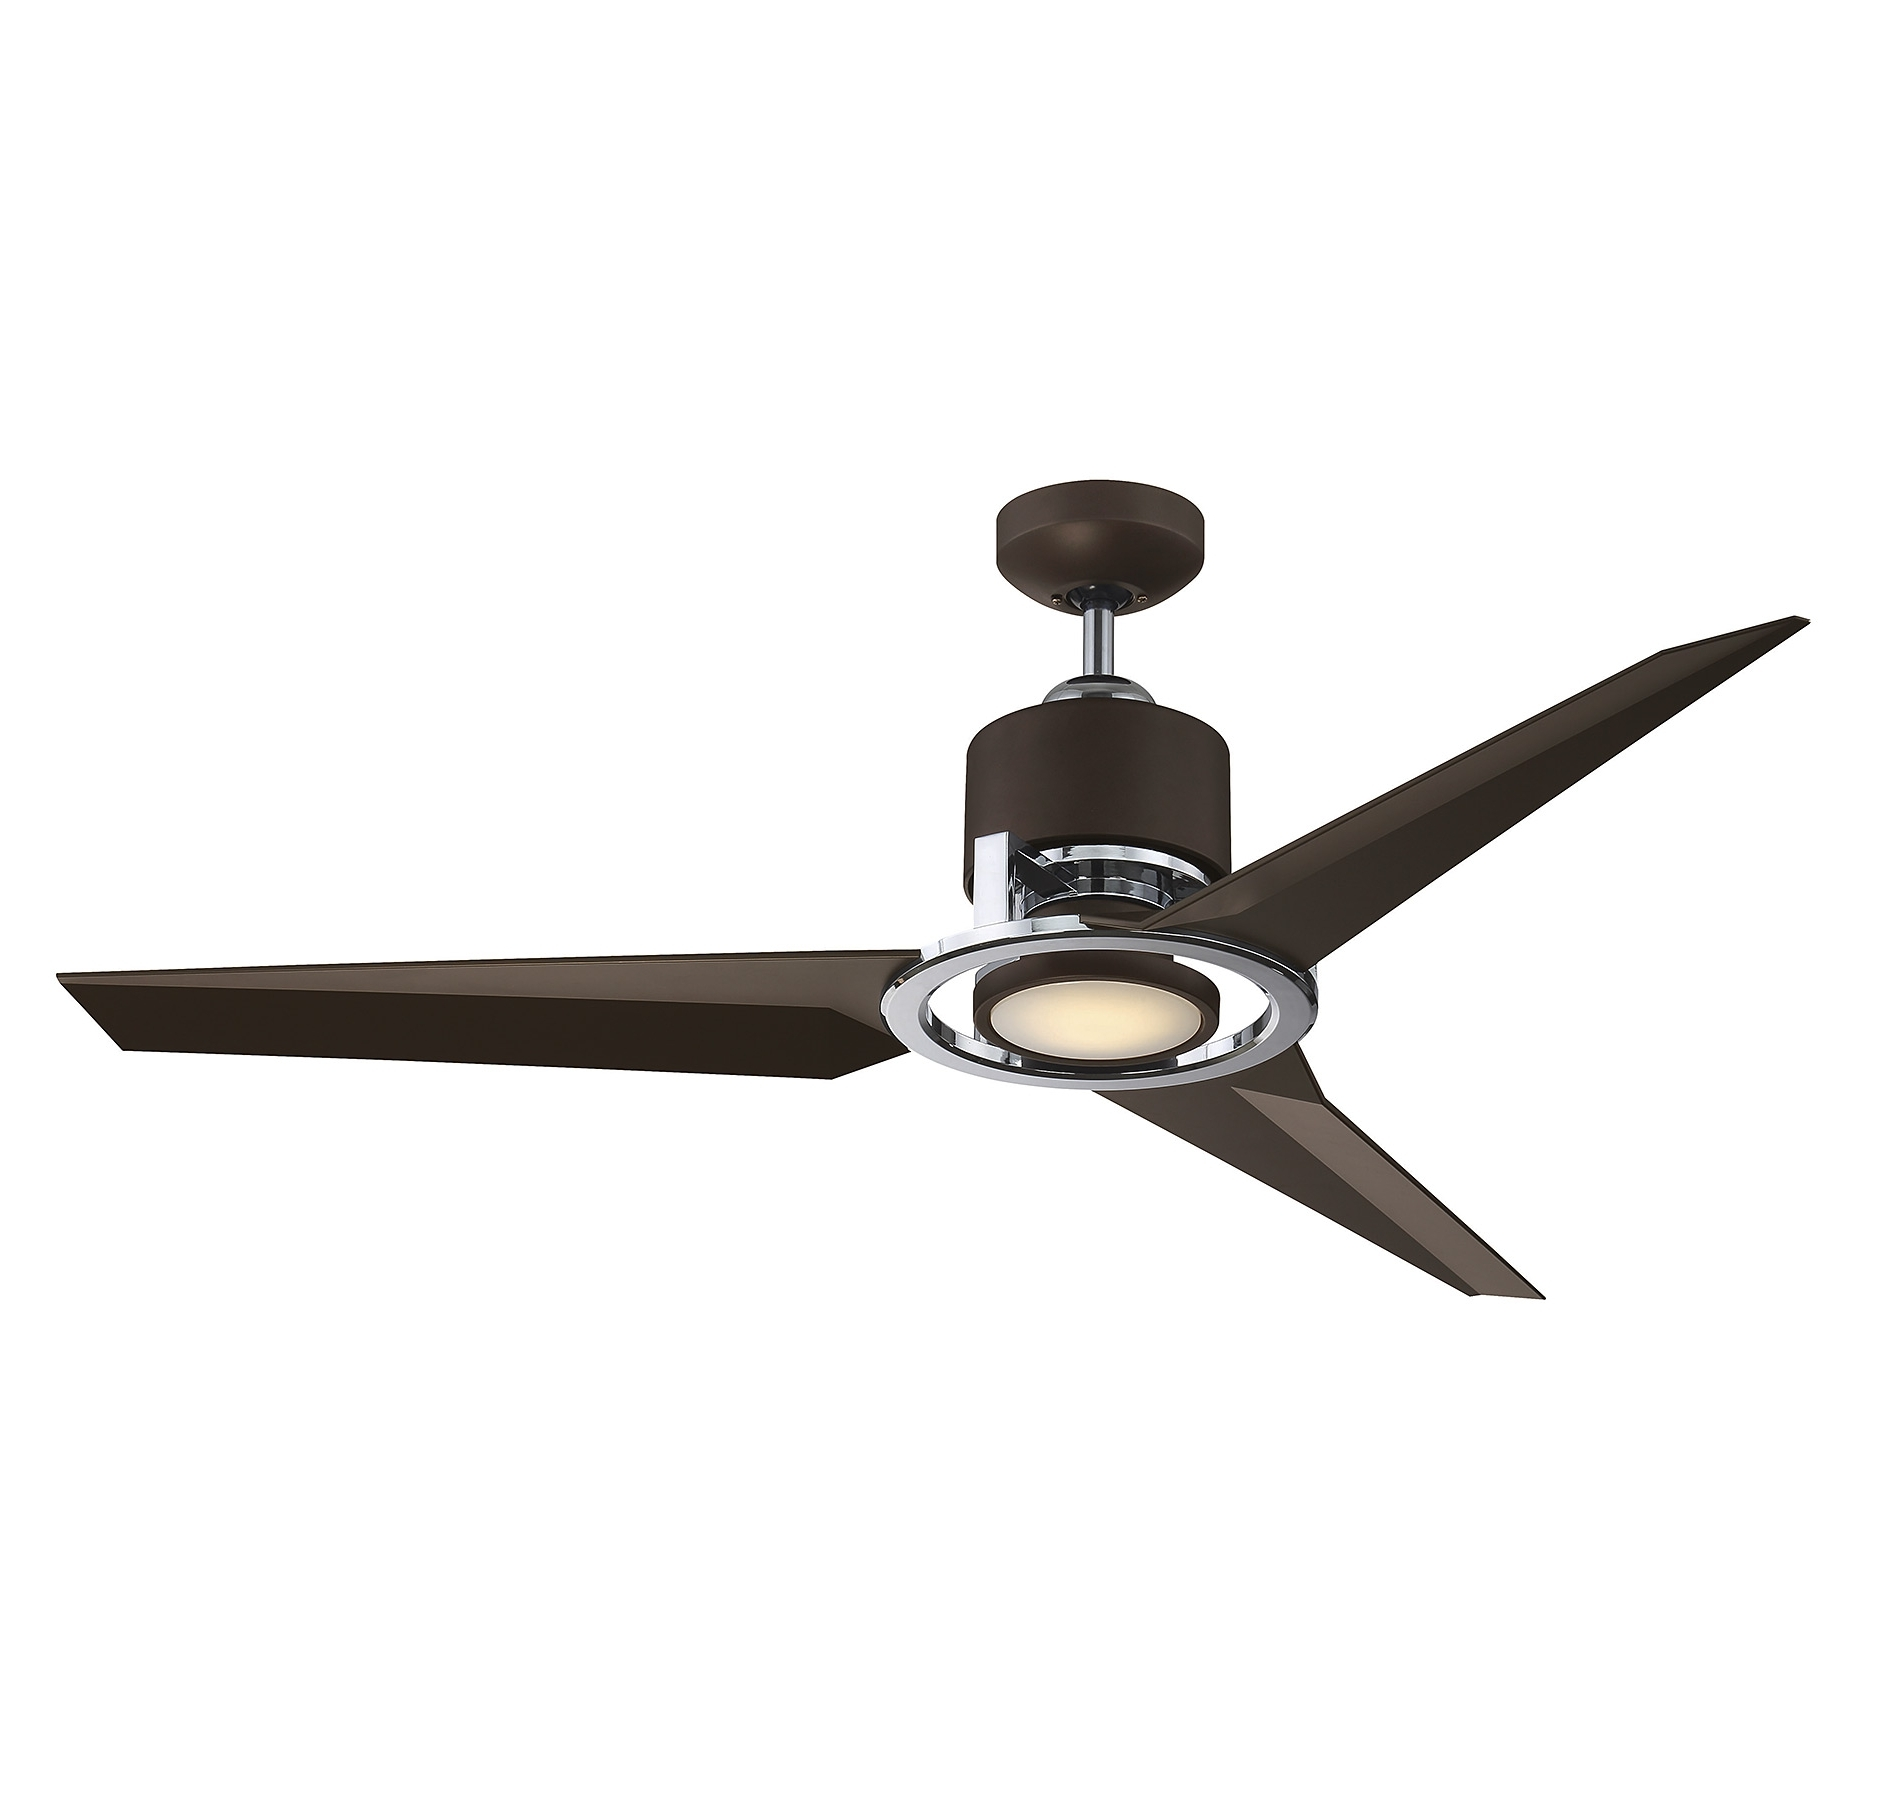 3 Blade Outdoor Ceiling Fan Lighting And Ceiling Fans, 3 Blade With Regard To Most Current 42 Inch Outdoor Ceiling Fans (View 2 of 20)